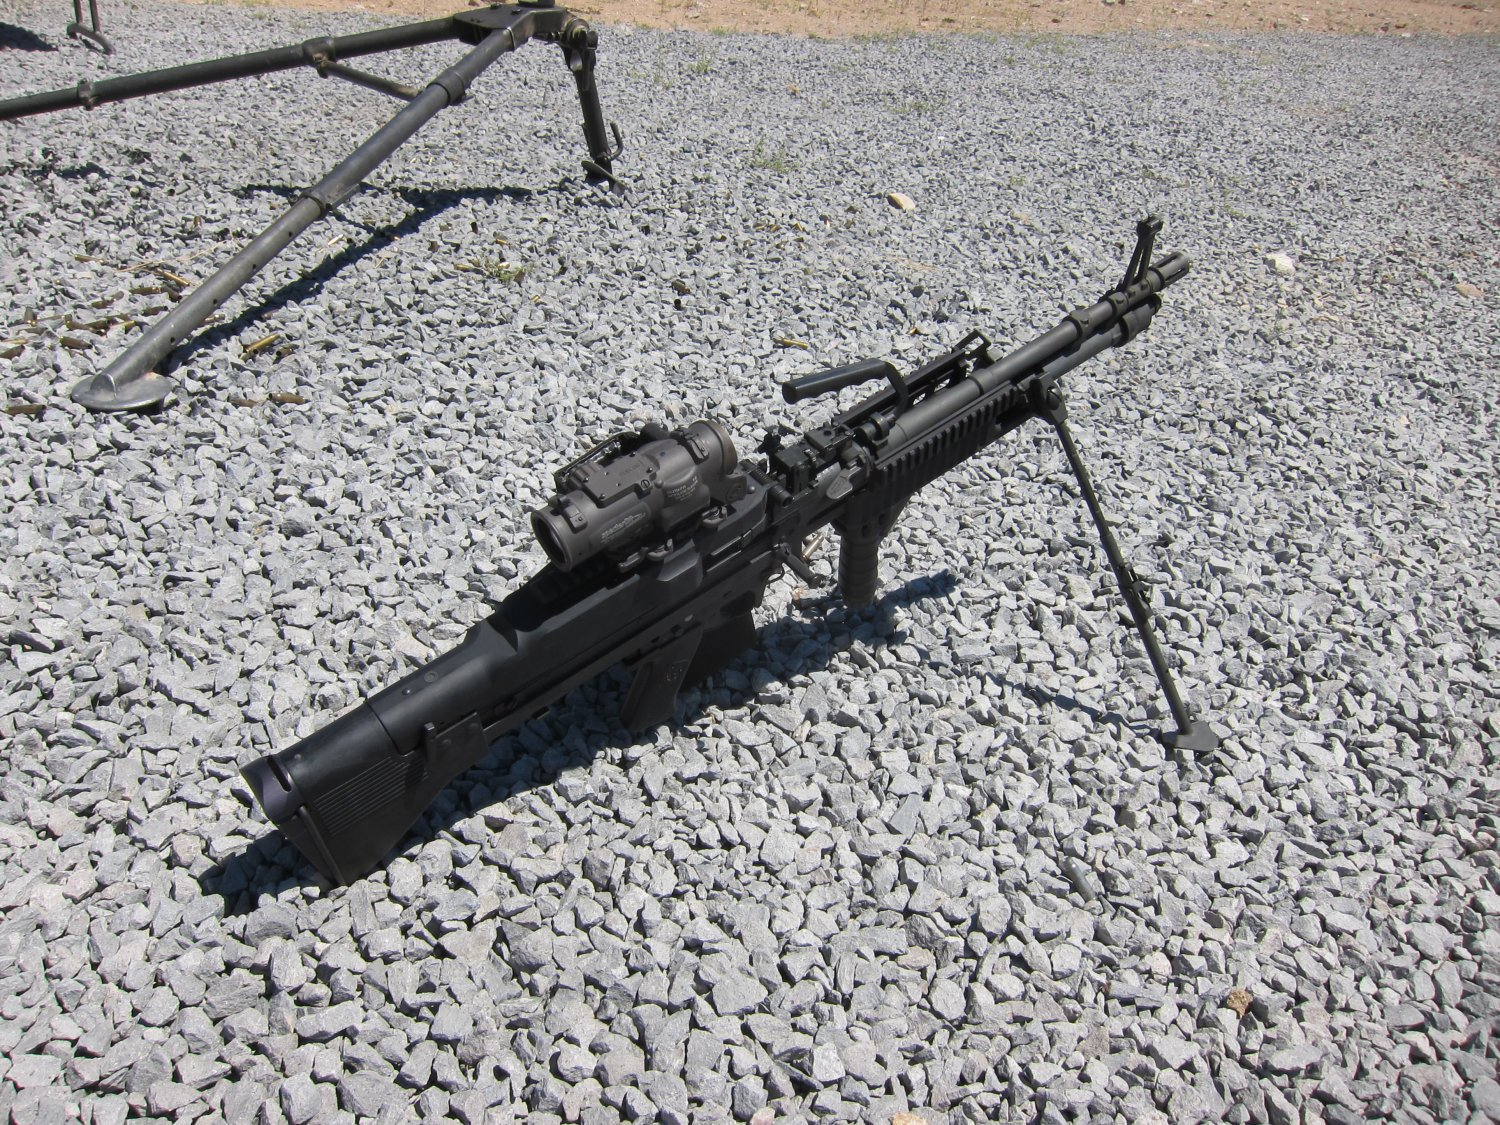 U.S. Ordnance Mk43 Mod 1 M60E4 Medium Machine Gun 7.62mm MMG 6 <!  :en  >U.S. Ordnance Mk43 Mod 1/M60E4 Commando 7.62mm NATO Medium Machine Gun (MMG) for Special Operations Forces (U.S. Navy SEALs): Latest Version Weapon Gets Test Fired at the Range (Video!) <!  :  >